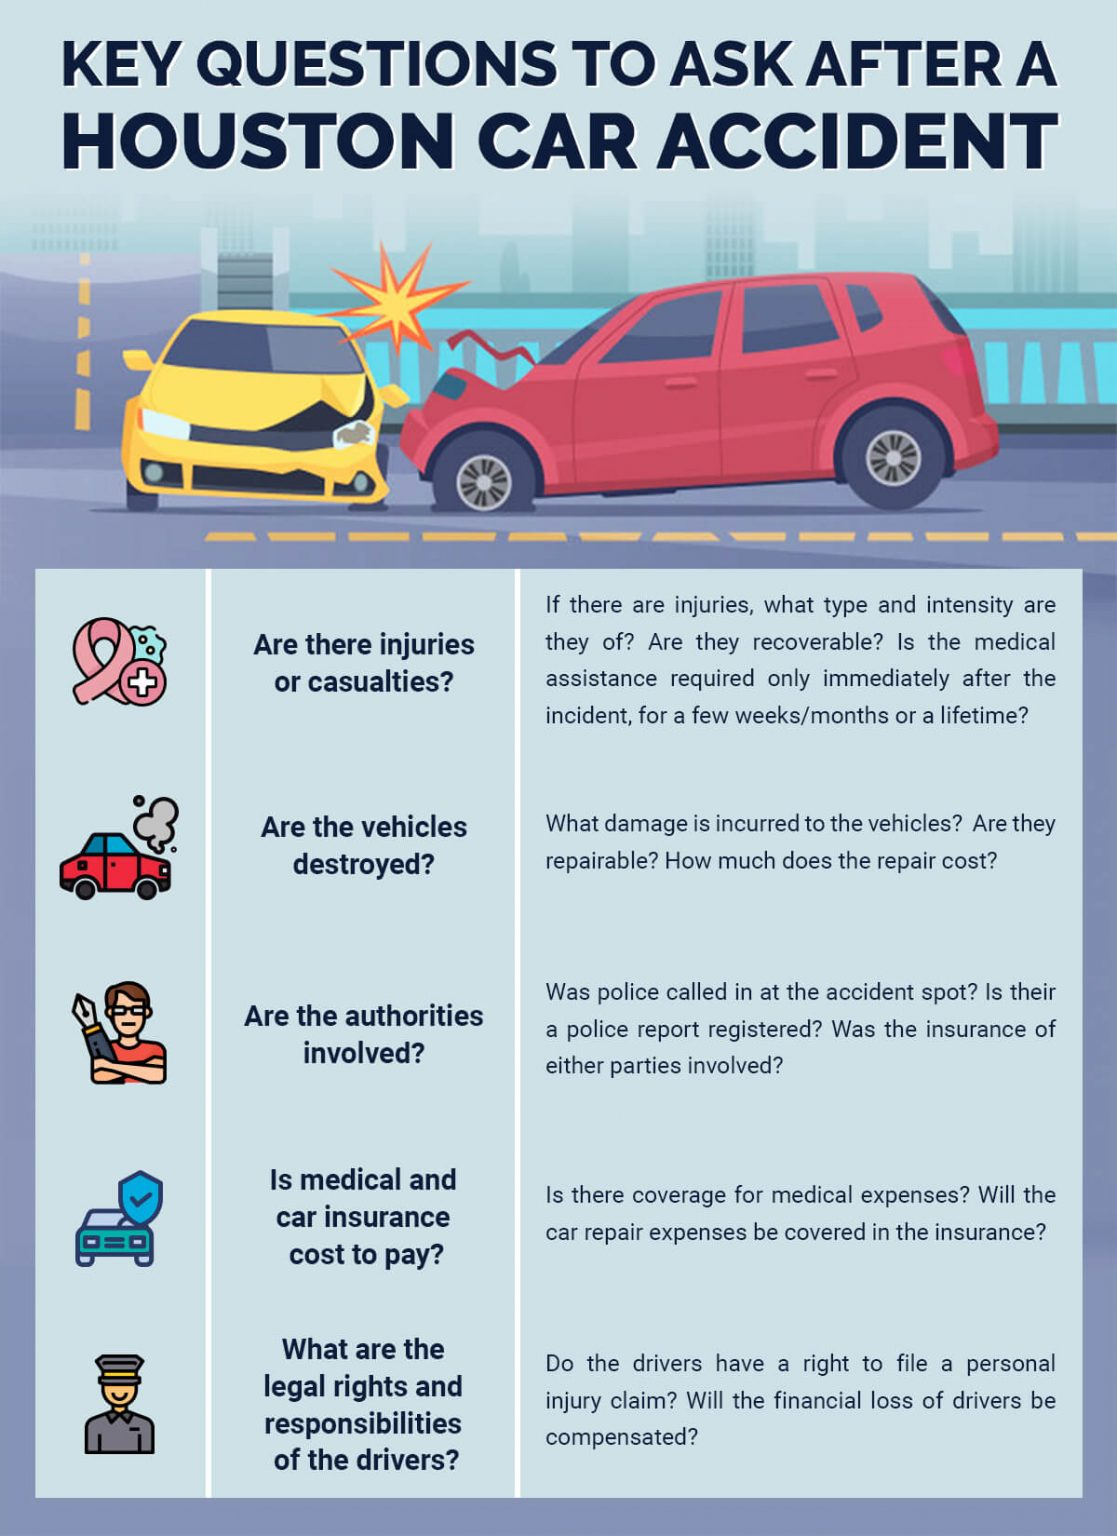 here are the key questions to ask after an accident